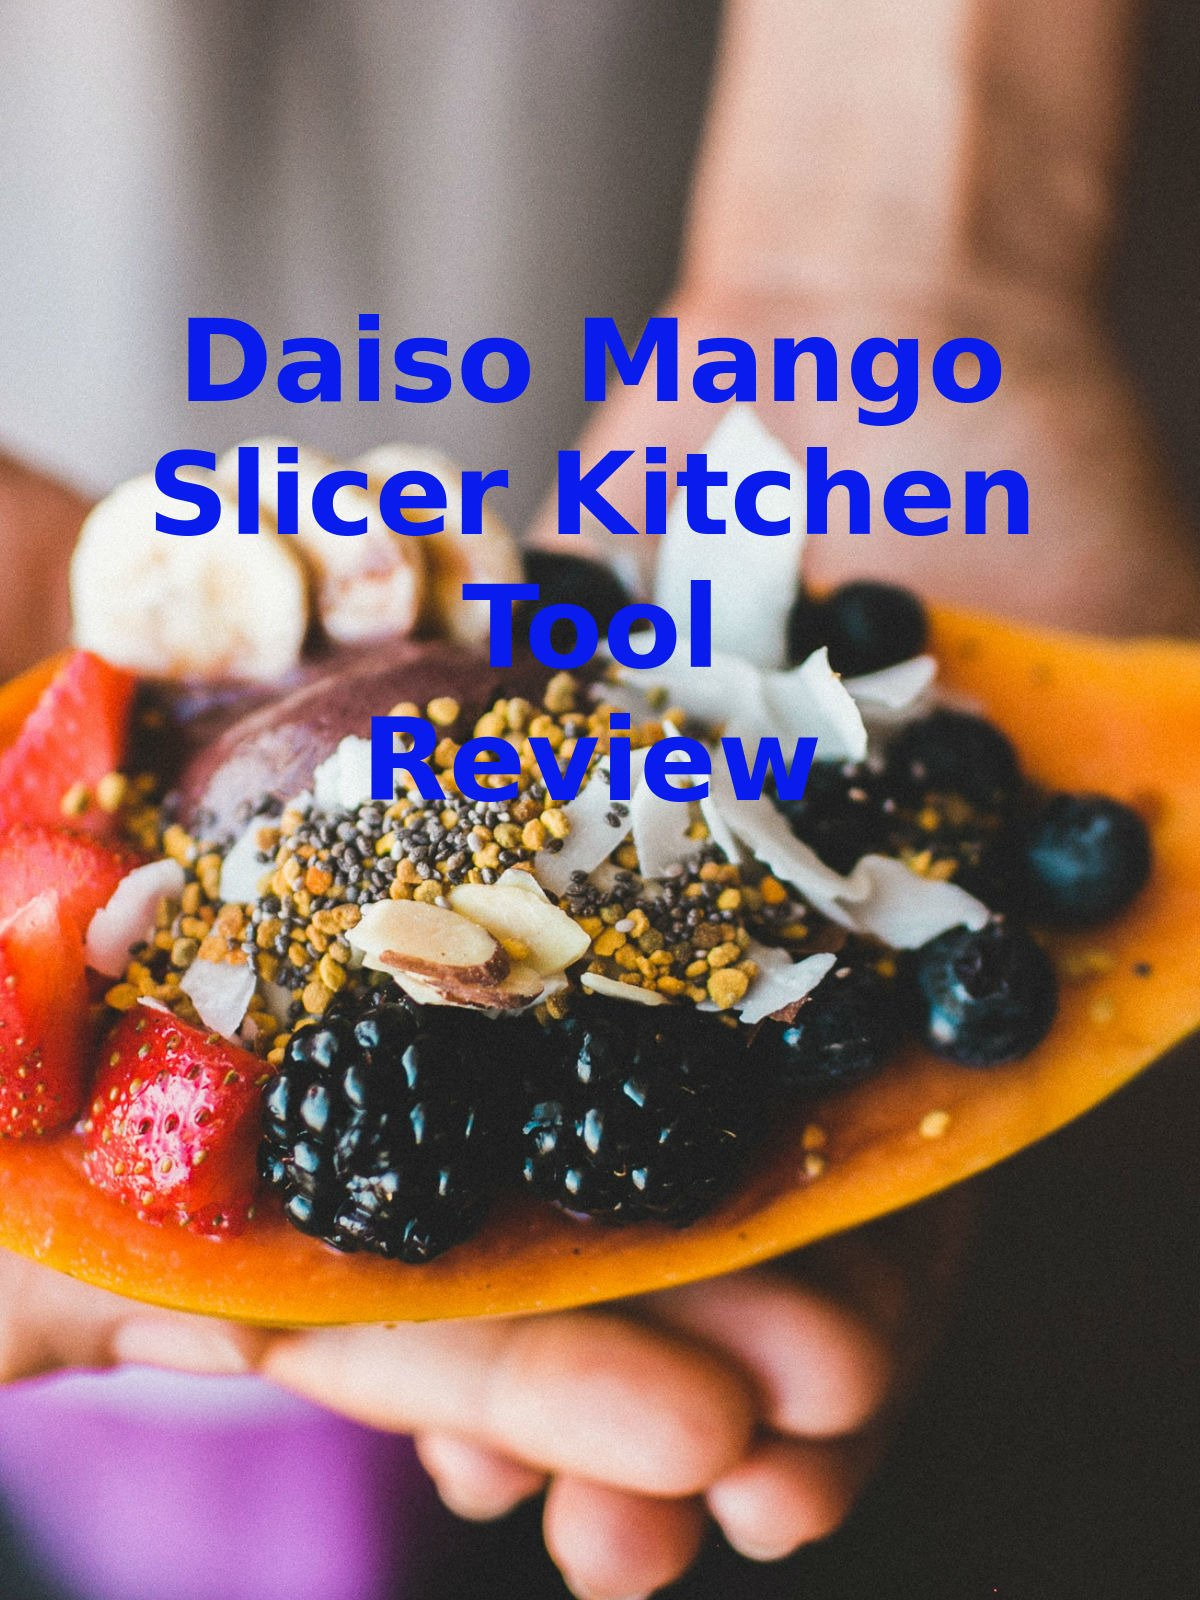 Review: Daiso Mango Slicer Kitchen Tool Review